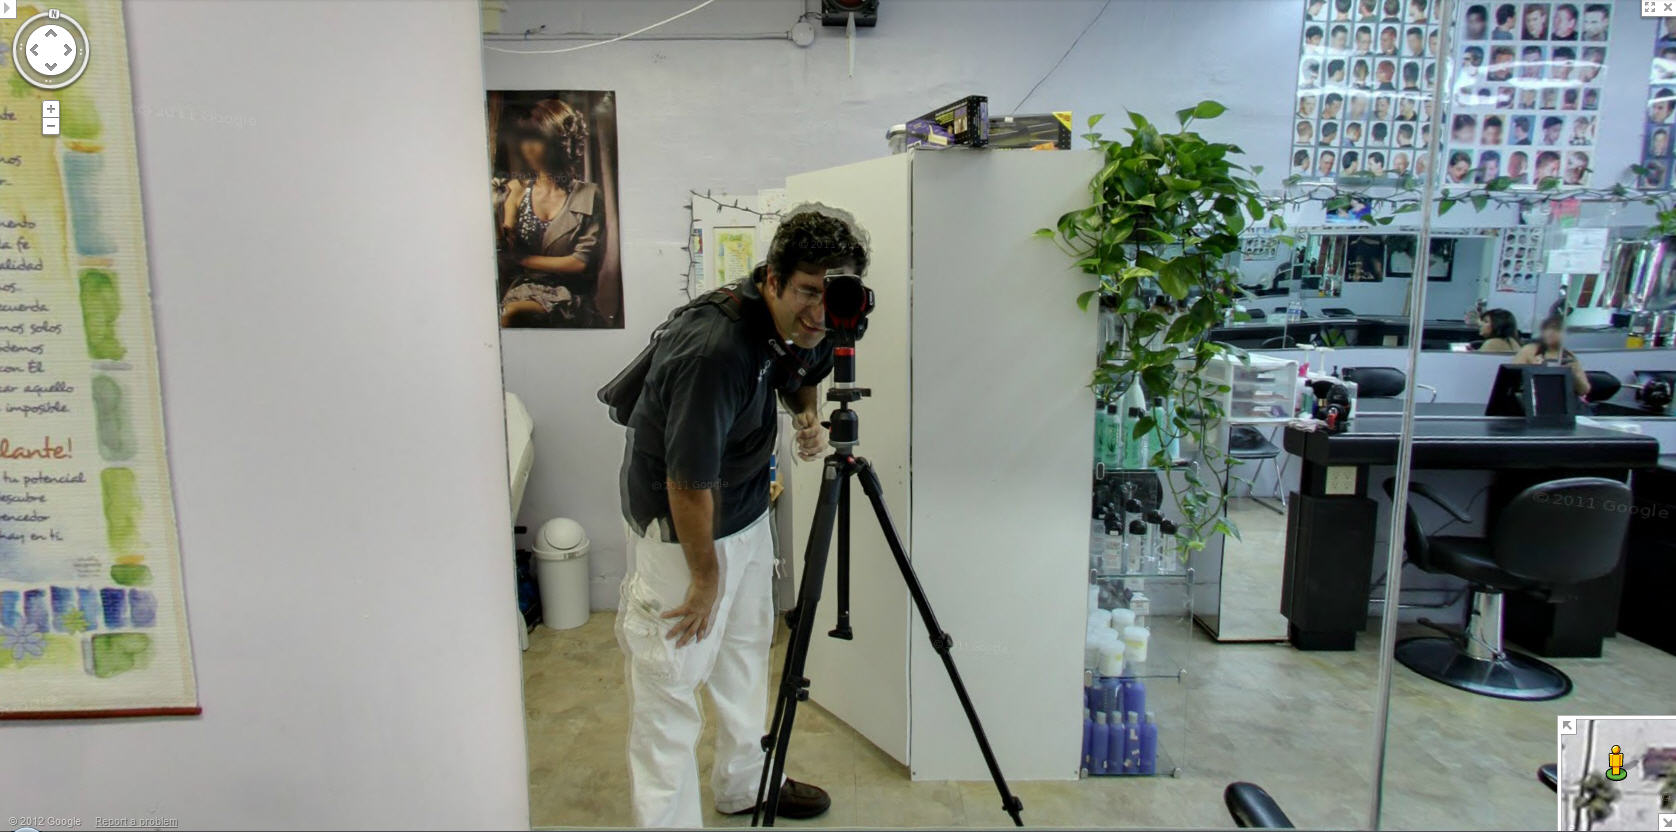 googles-indoor-street-view-photographer-looks-like-he-needs-a-haircut